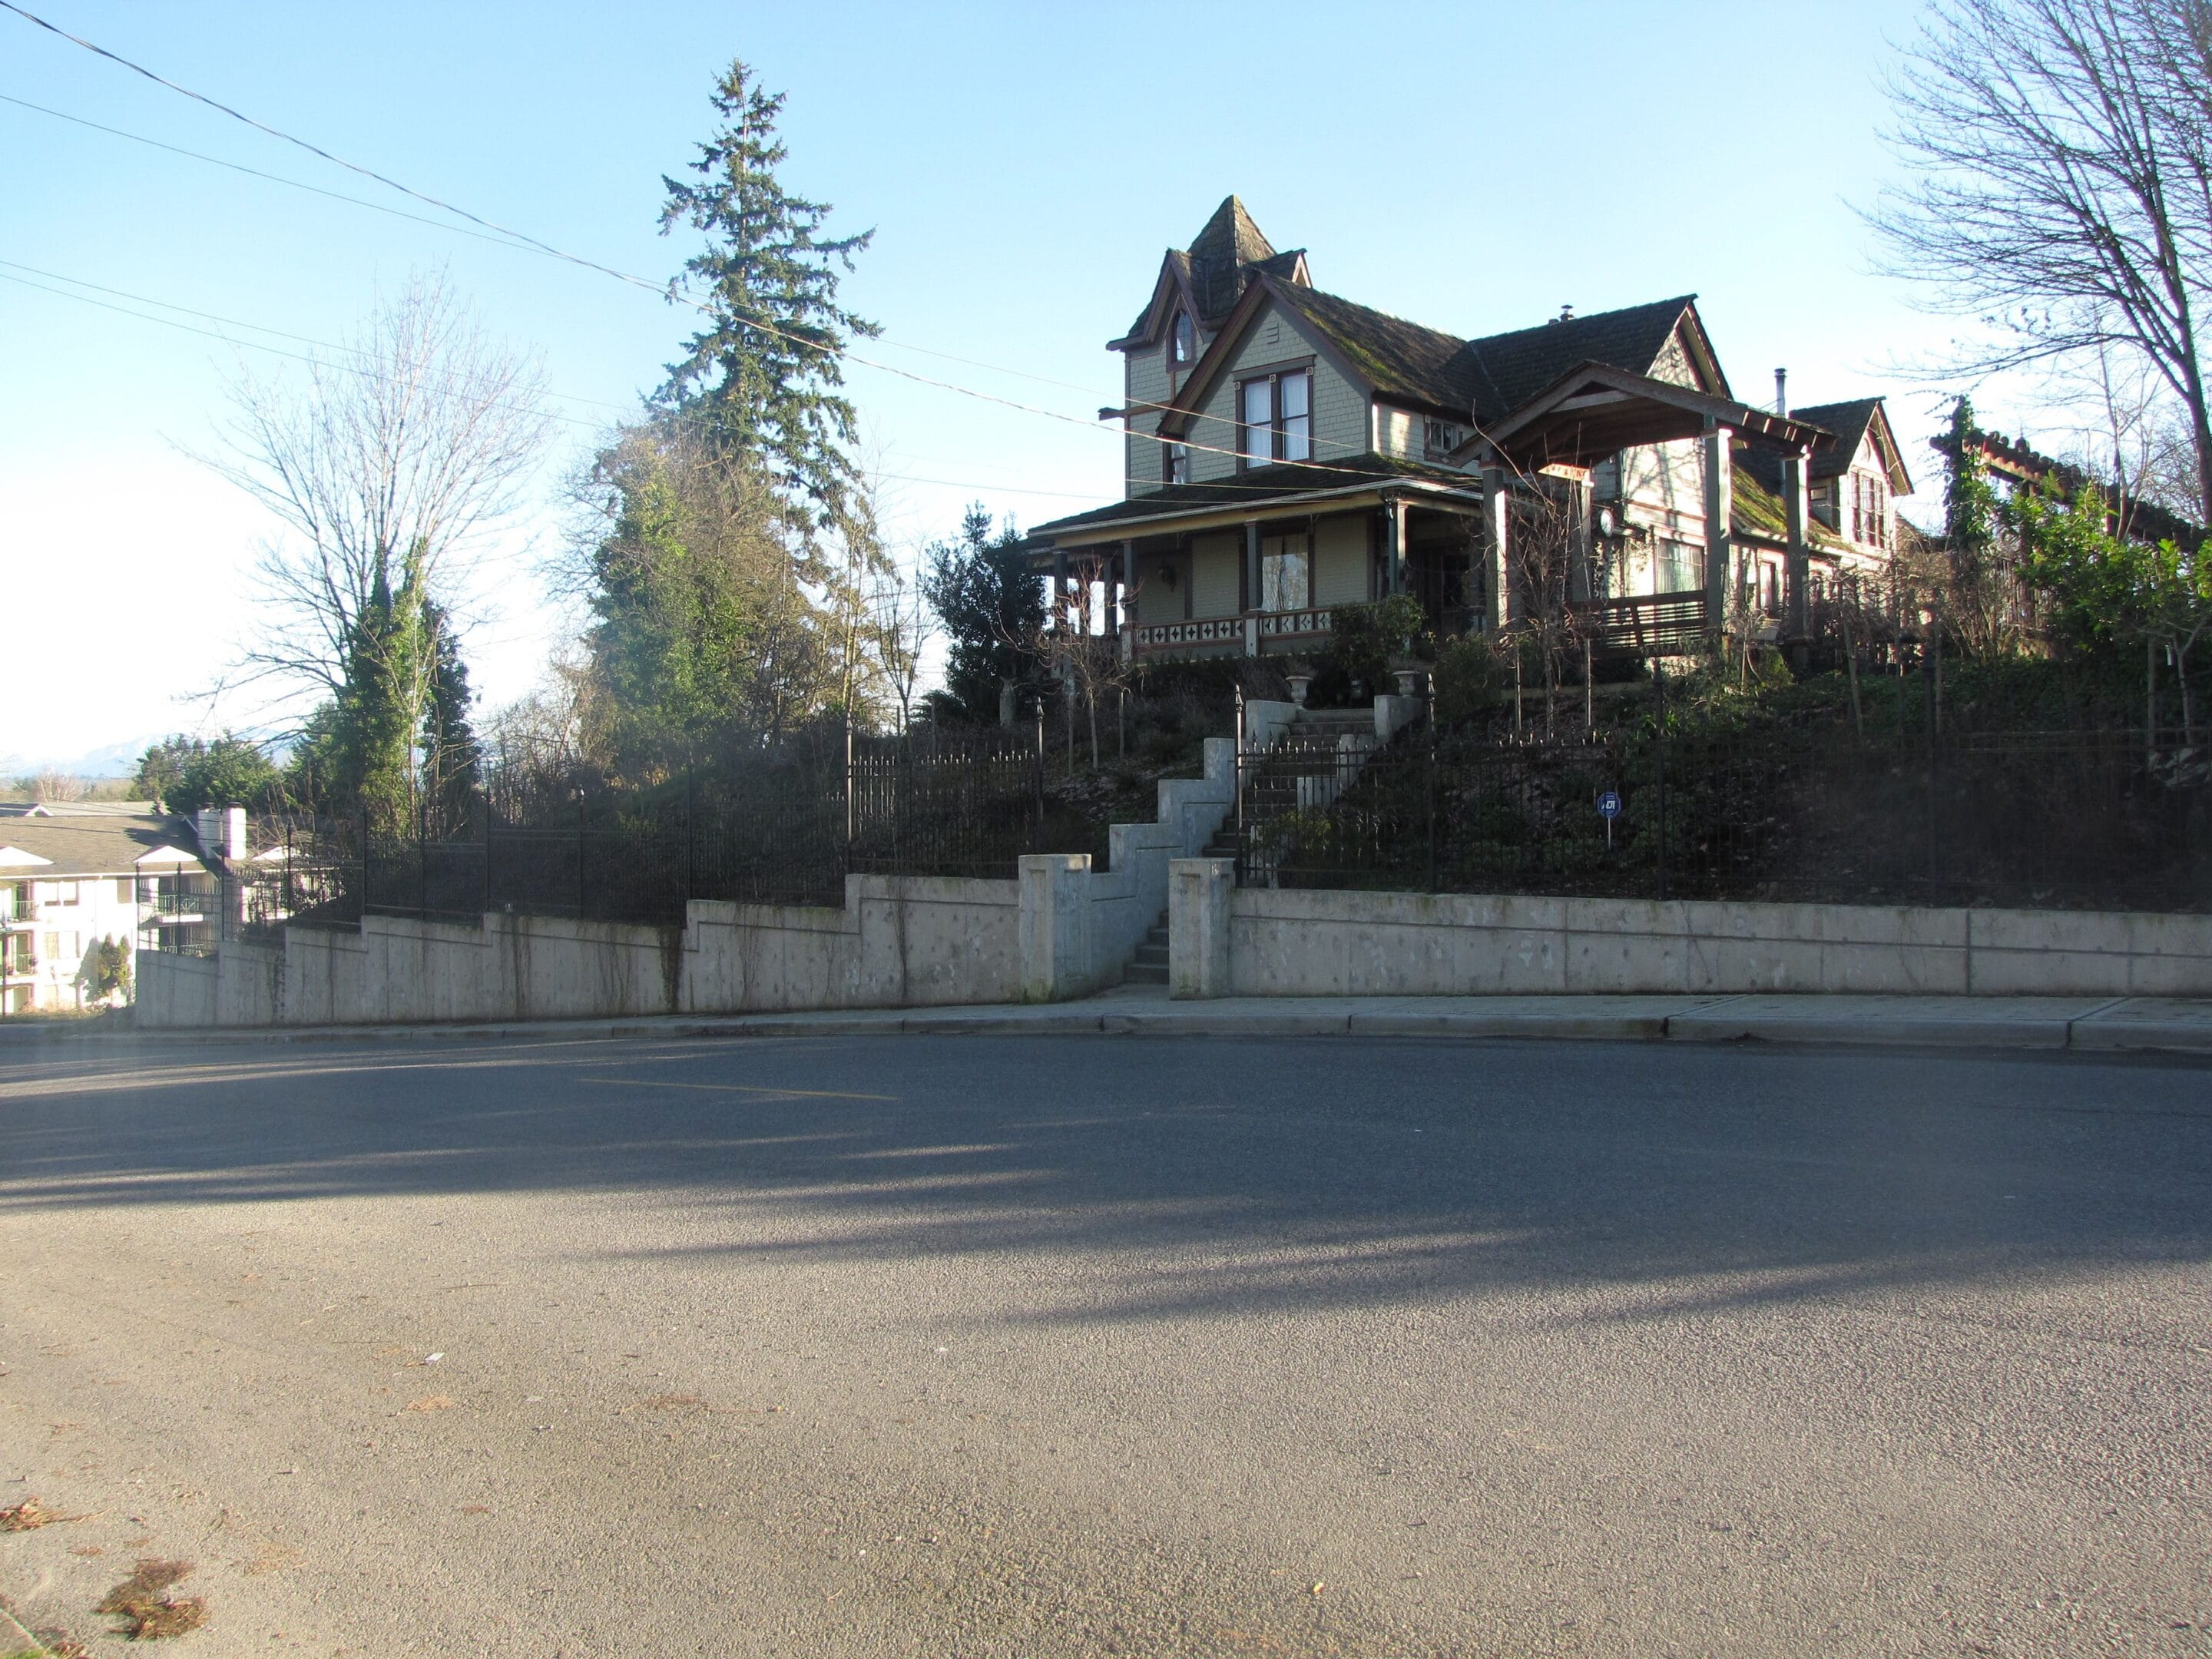 structural engineering and civil engineering for retaining wall